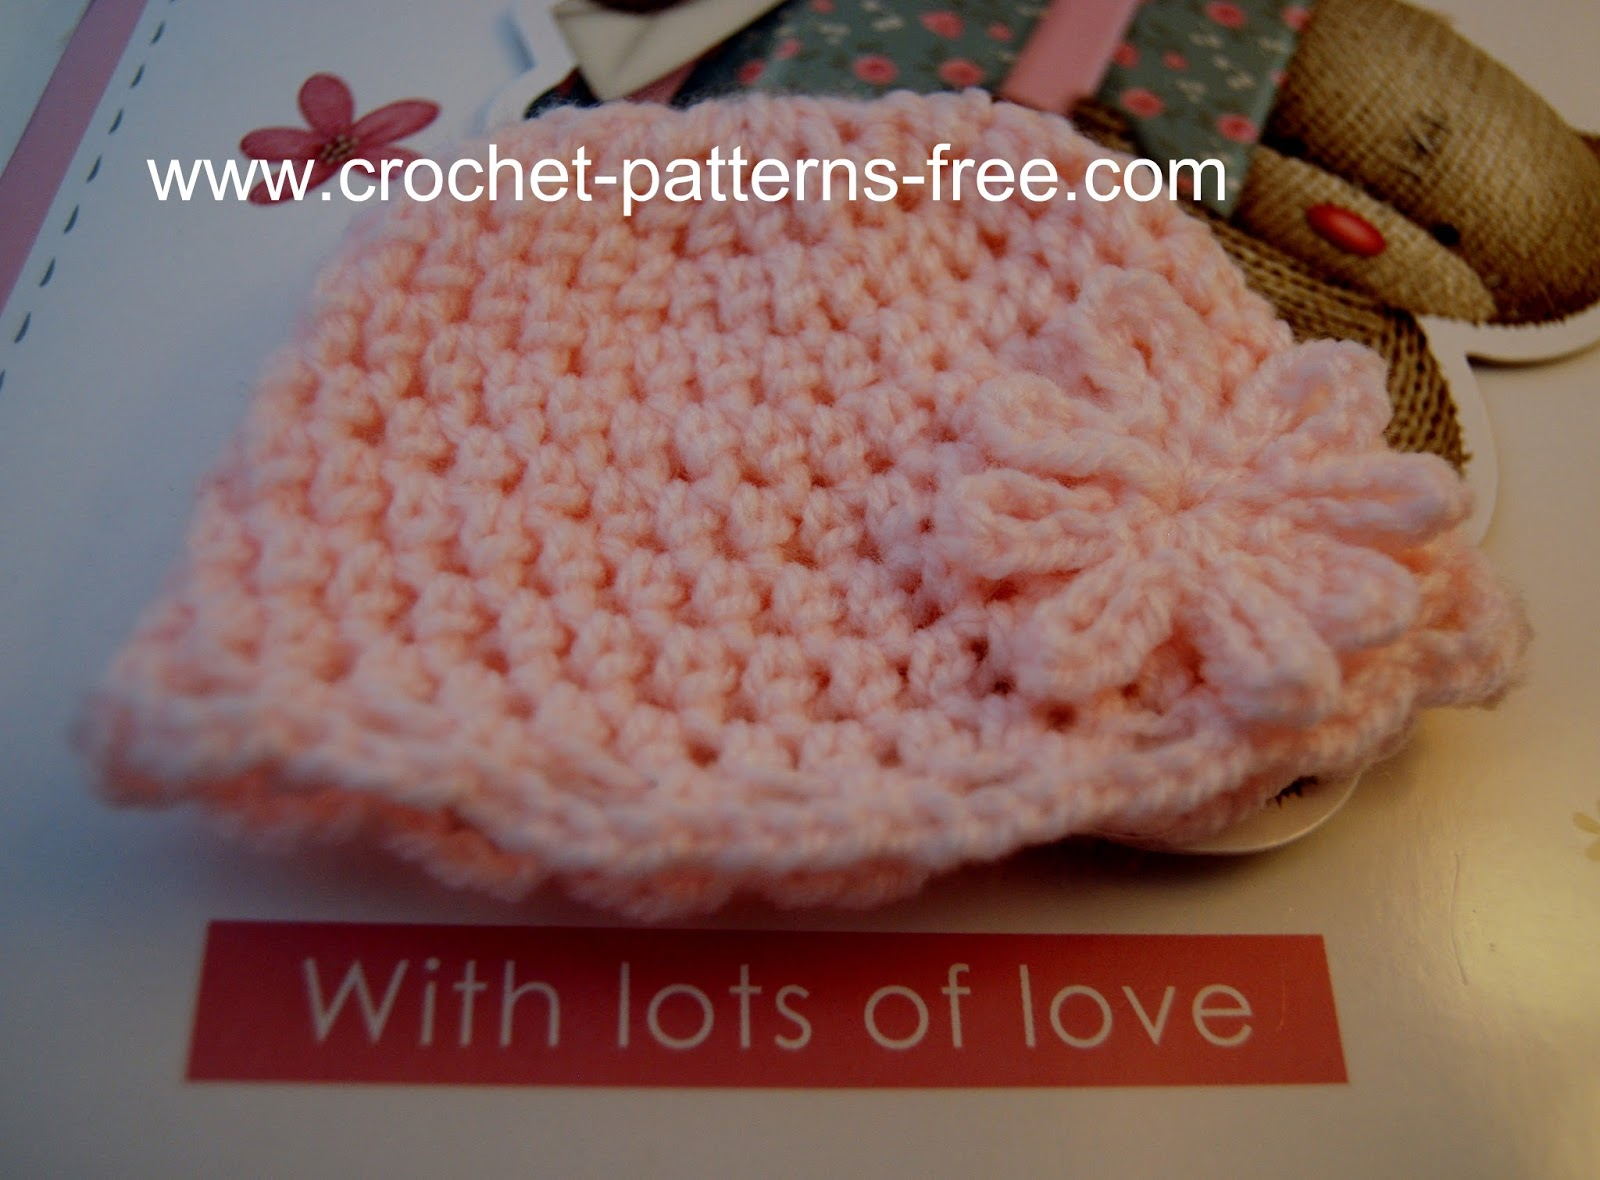 Crochet Newborn Baby Cardigan Pattern : FREE PATTERNS FOR CROCHET BABY HATS